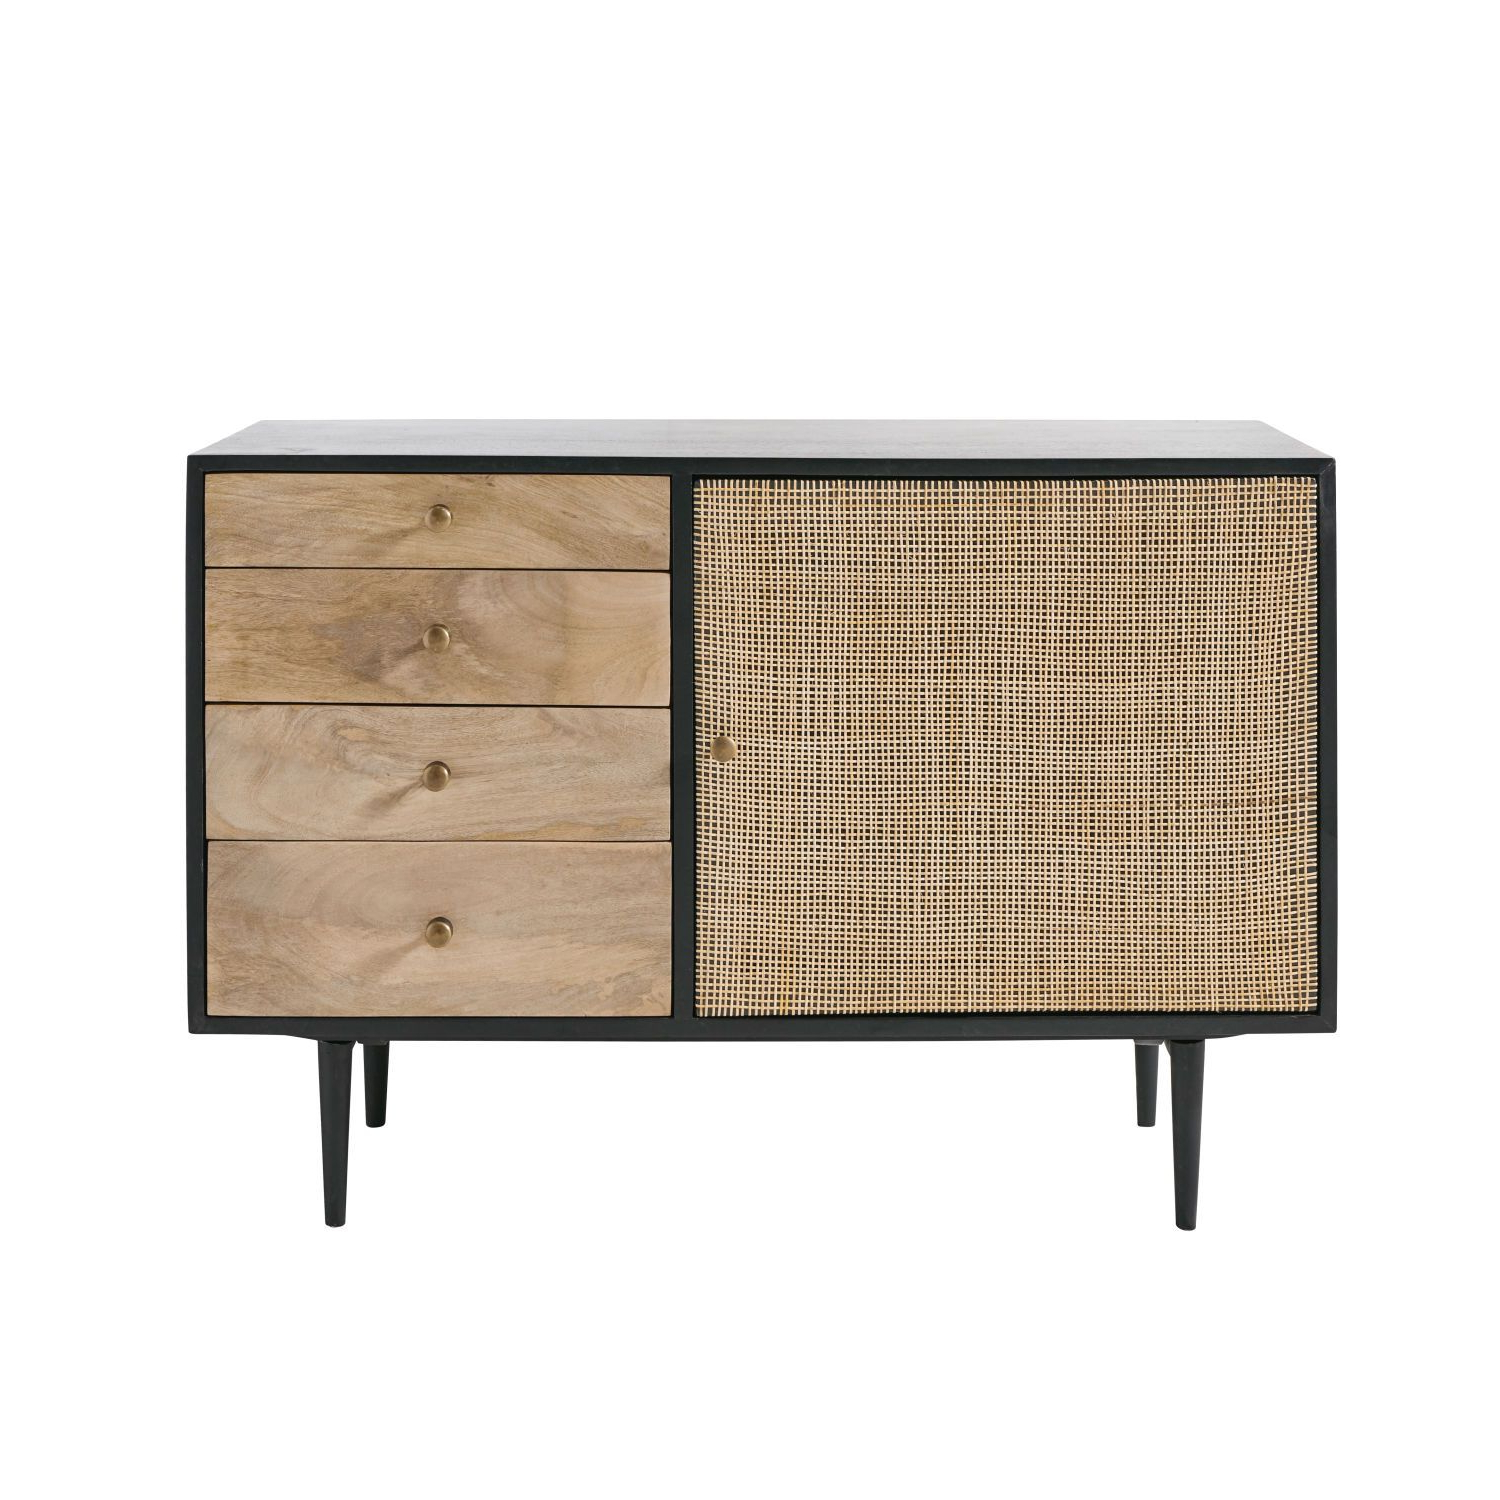 2019 Solid Mango Wood And Acacia 1 Door 4 Drawer Sideboard In 2018 Pertaining To Acacia Wood 4 Door Sideboards (View 3 of 20)